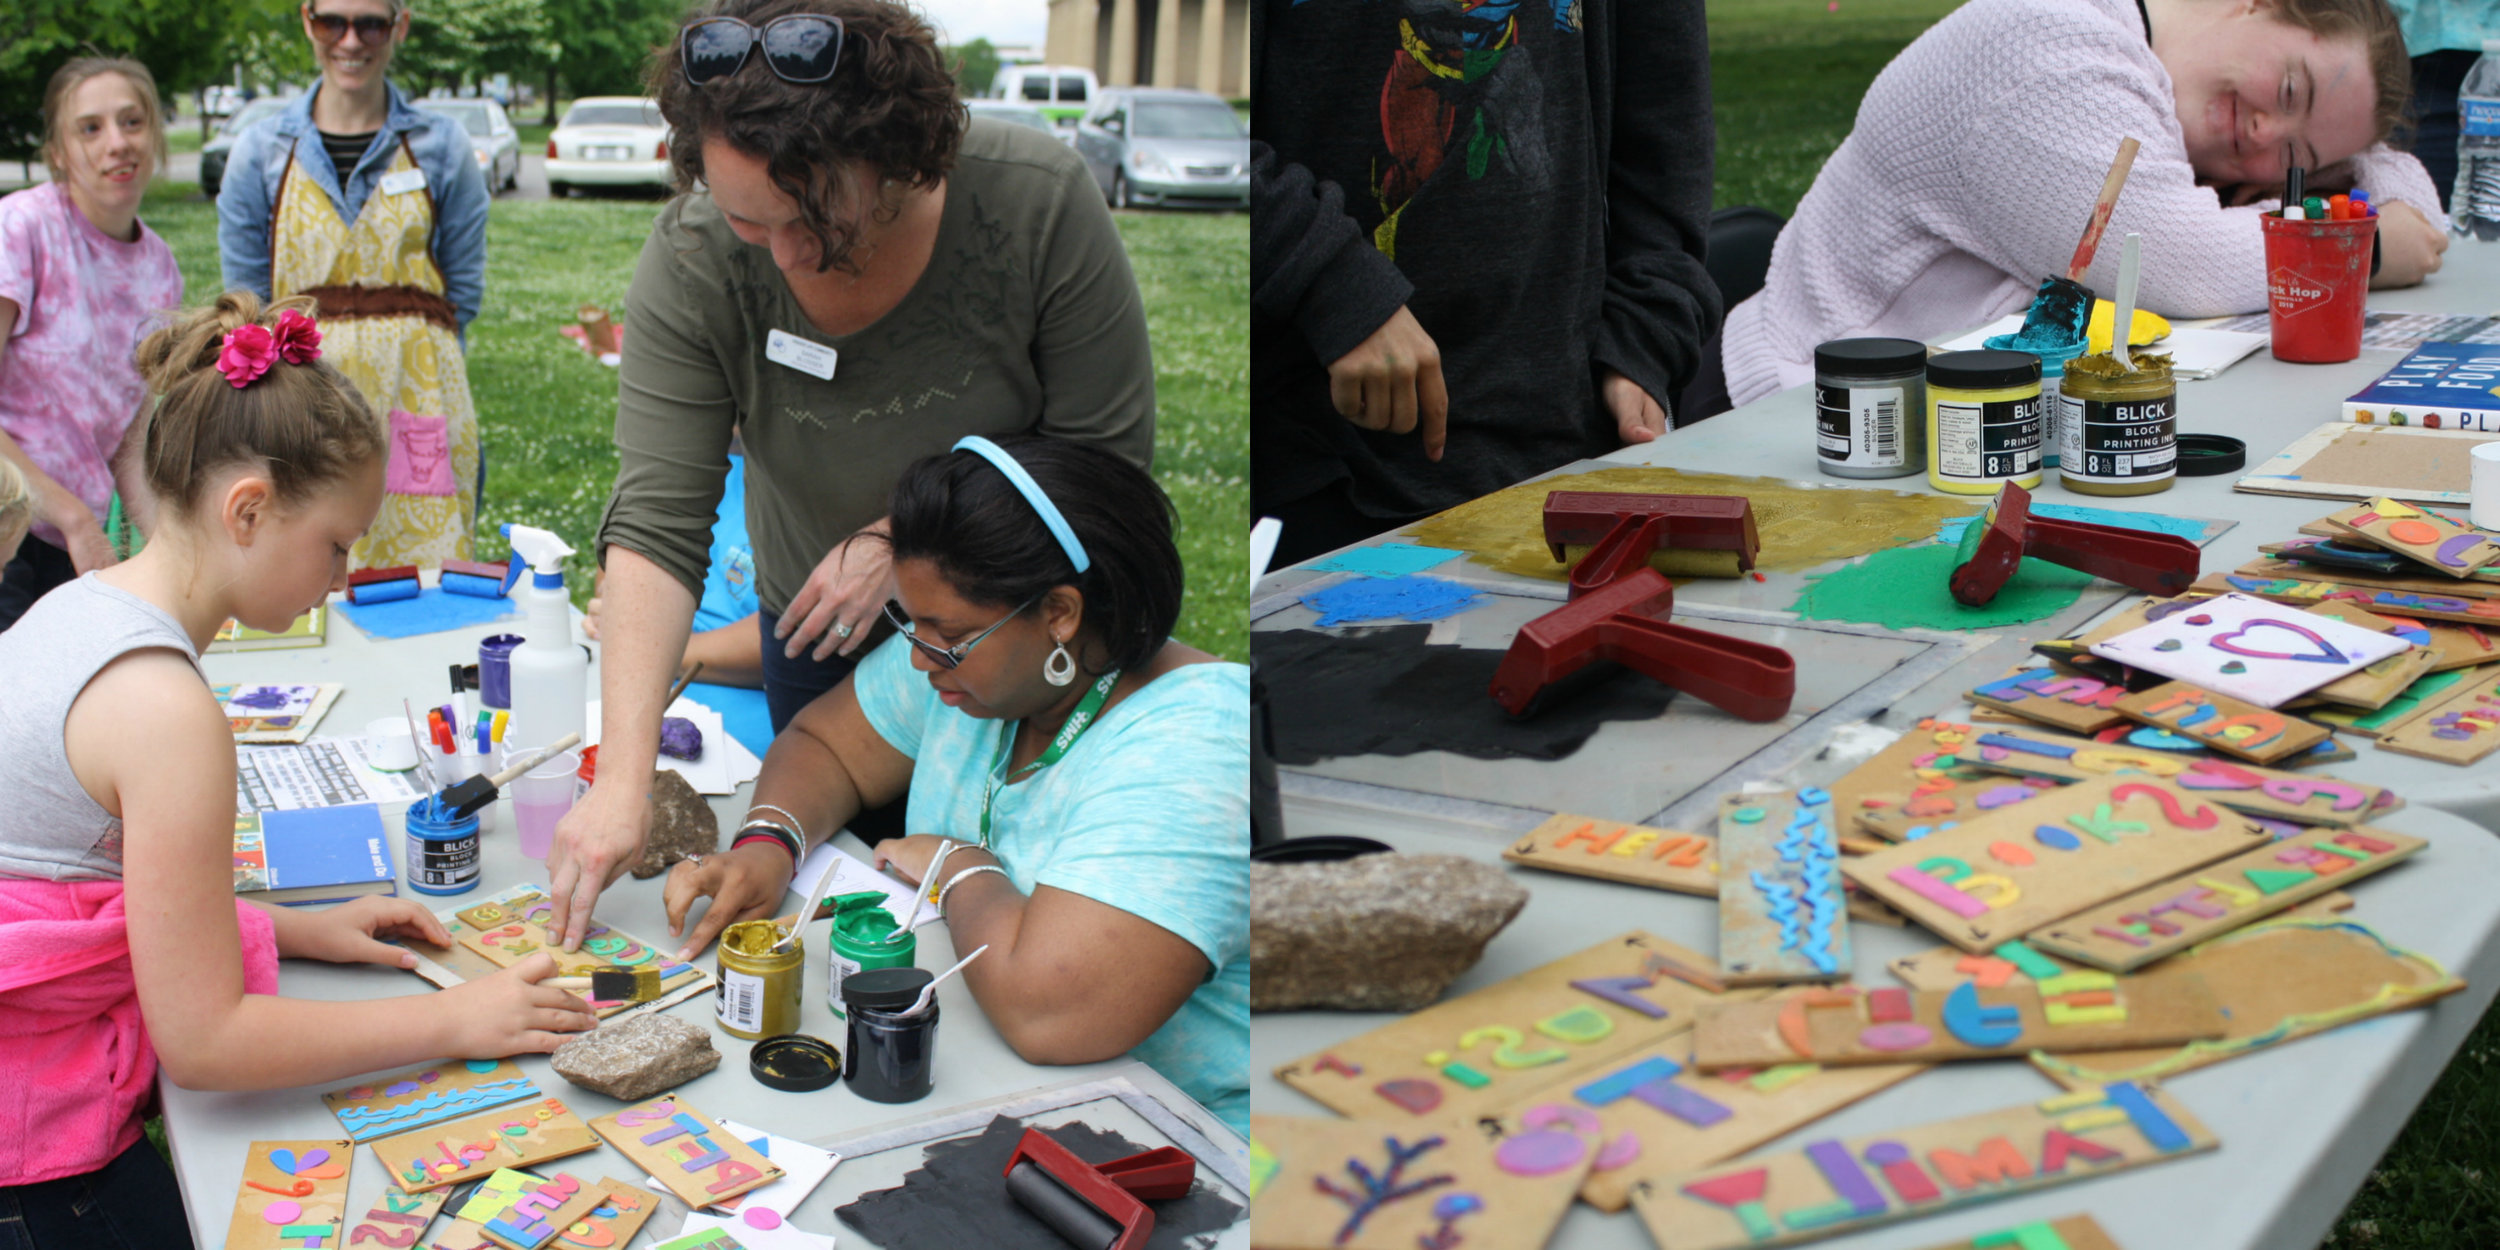 Program Specialist Sarah Blosser creating with some of the Friends on a creative adventure.